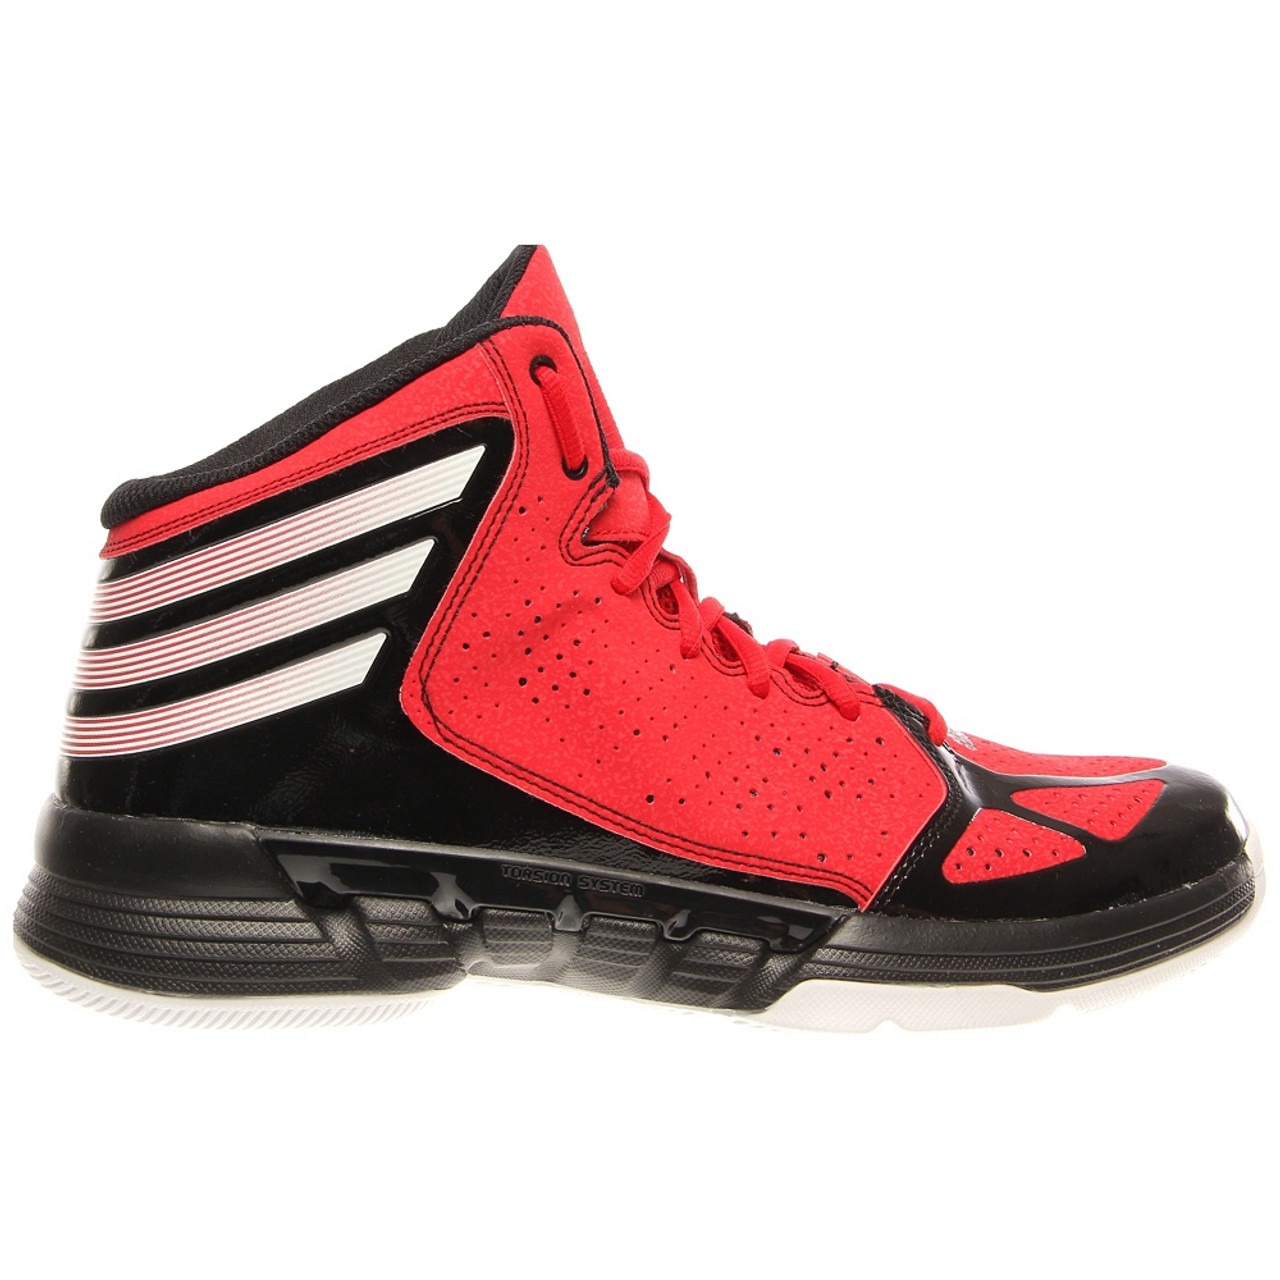 14d16be1f0caa Adidas Mad Handle Red Black Mens Basketball Shoes - Shop now   Shoolu.com